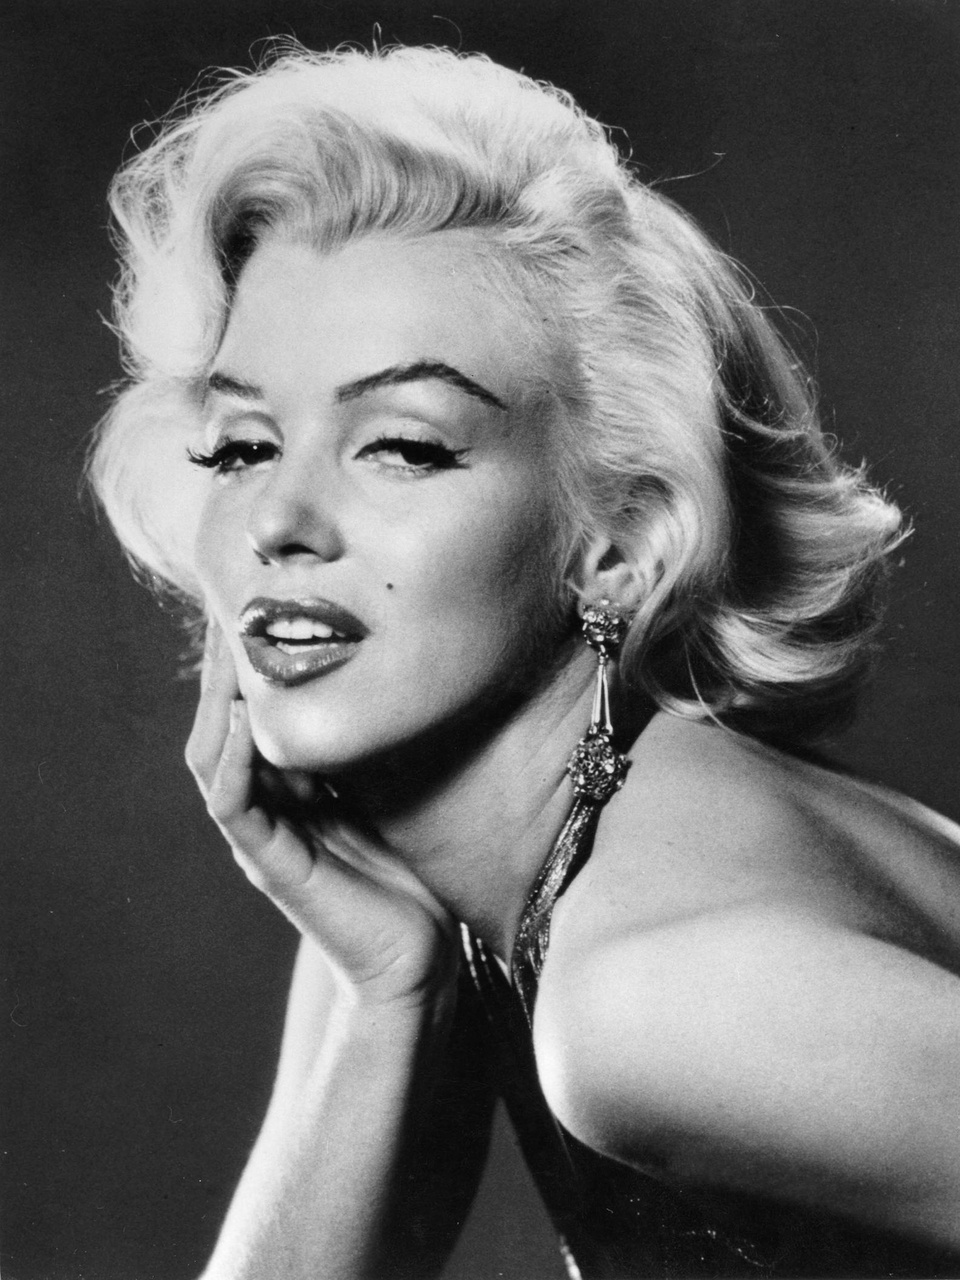 The Gentlemen's Foundation: The Friendship of Marilyn ...